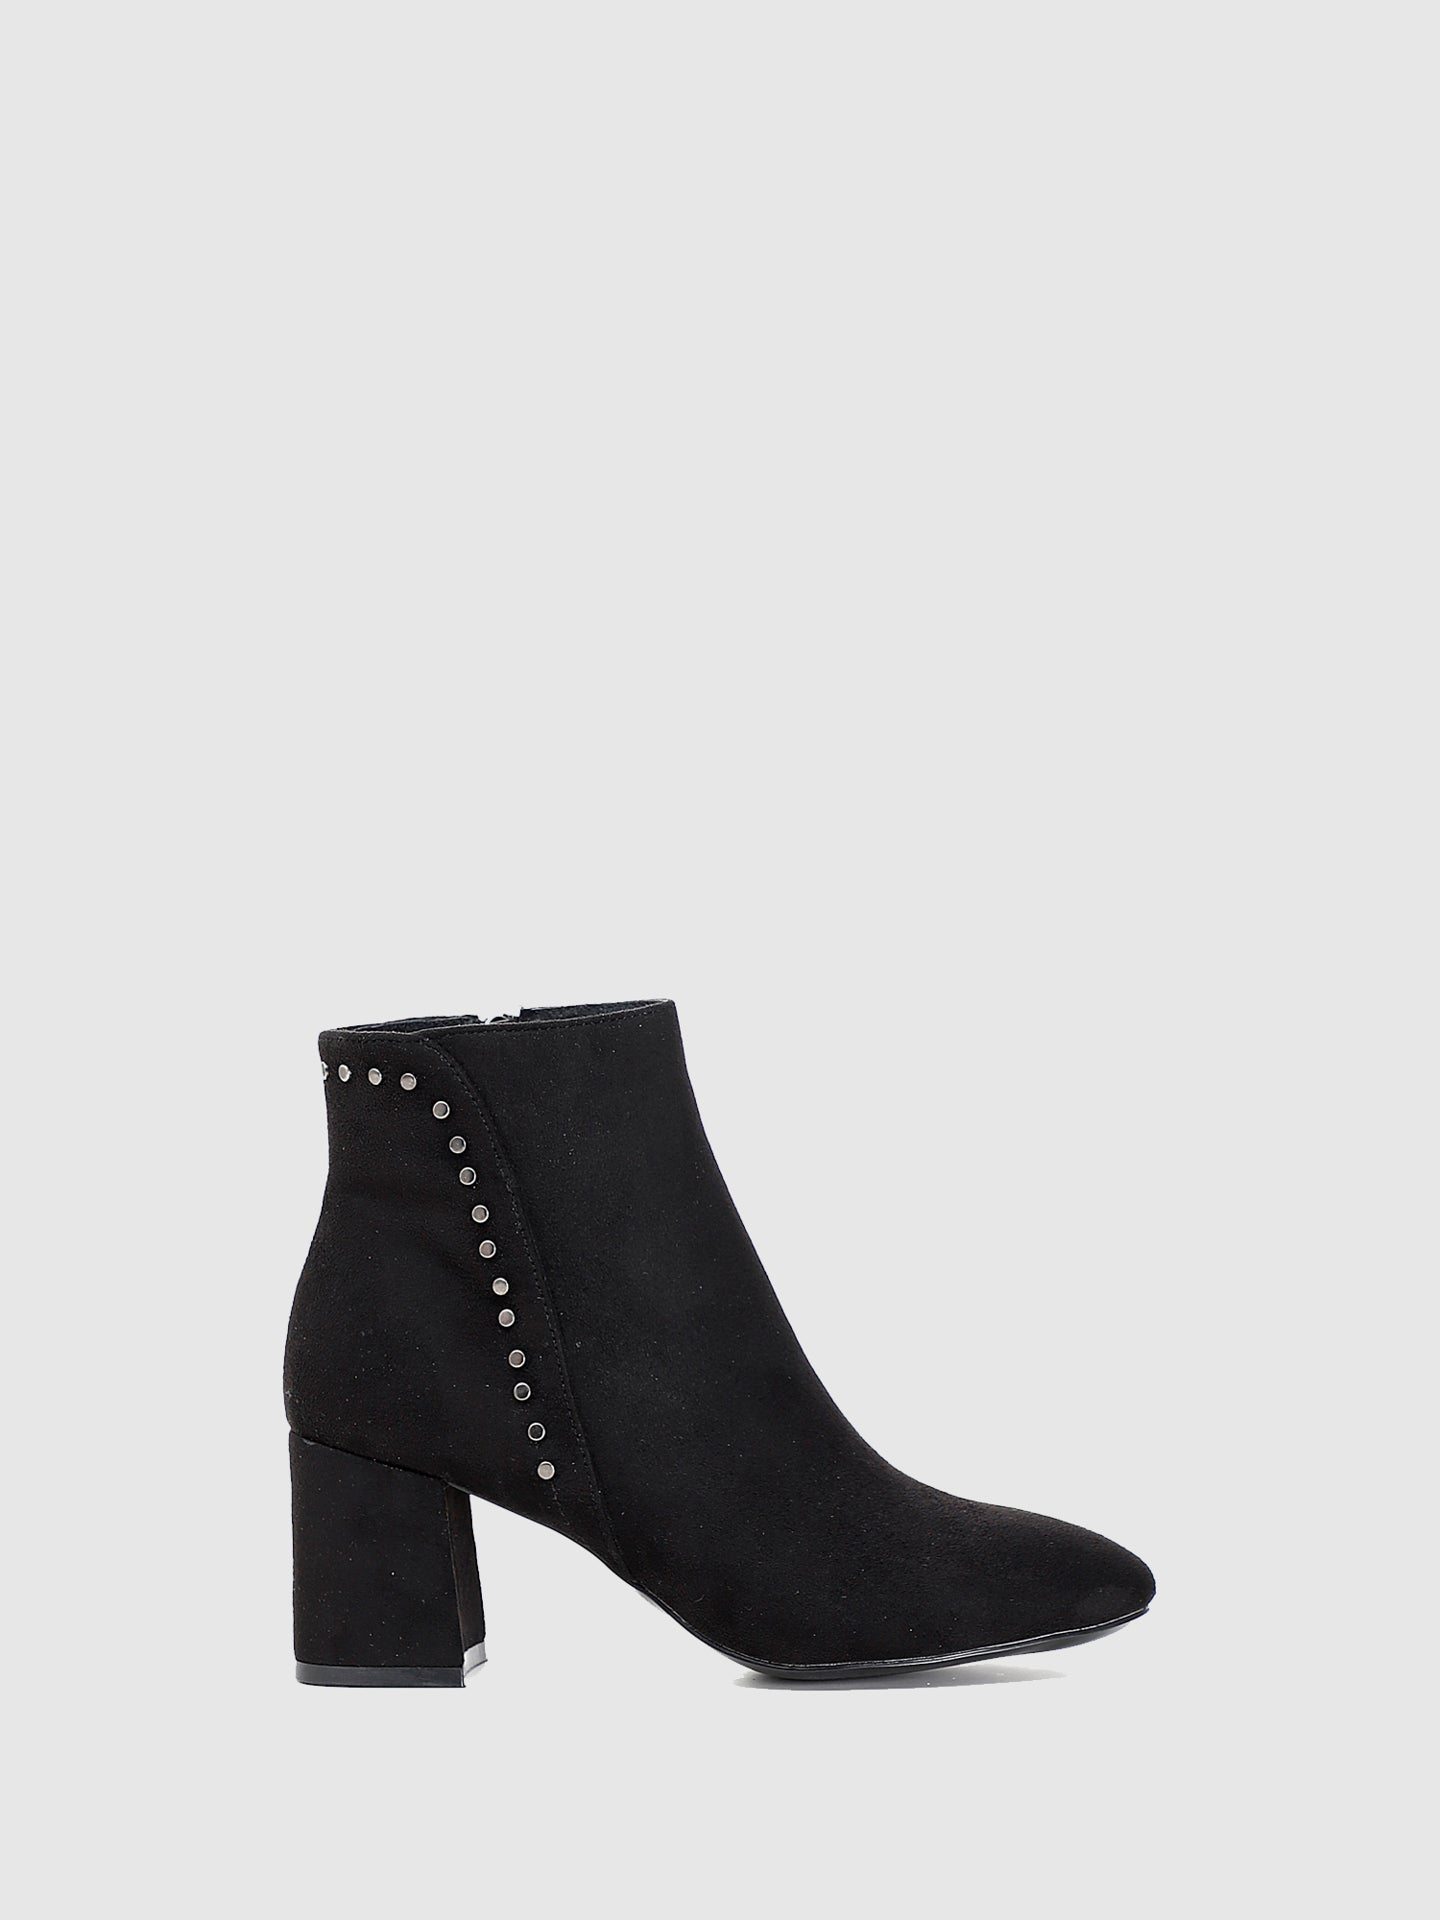 Cafè Noir Black Pointed Toe Ankle Boots